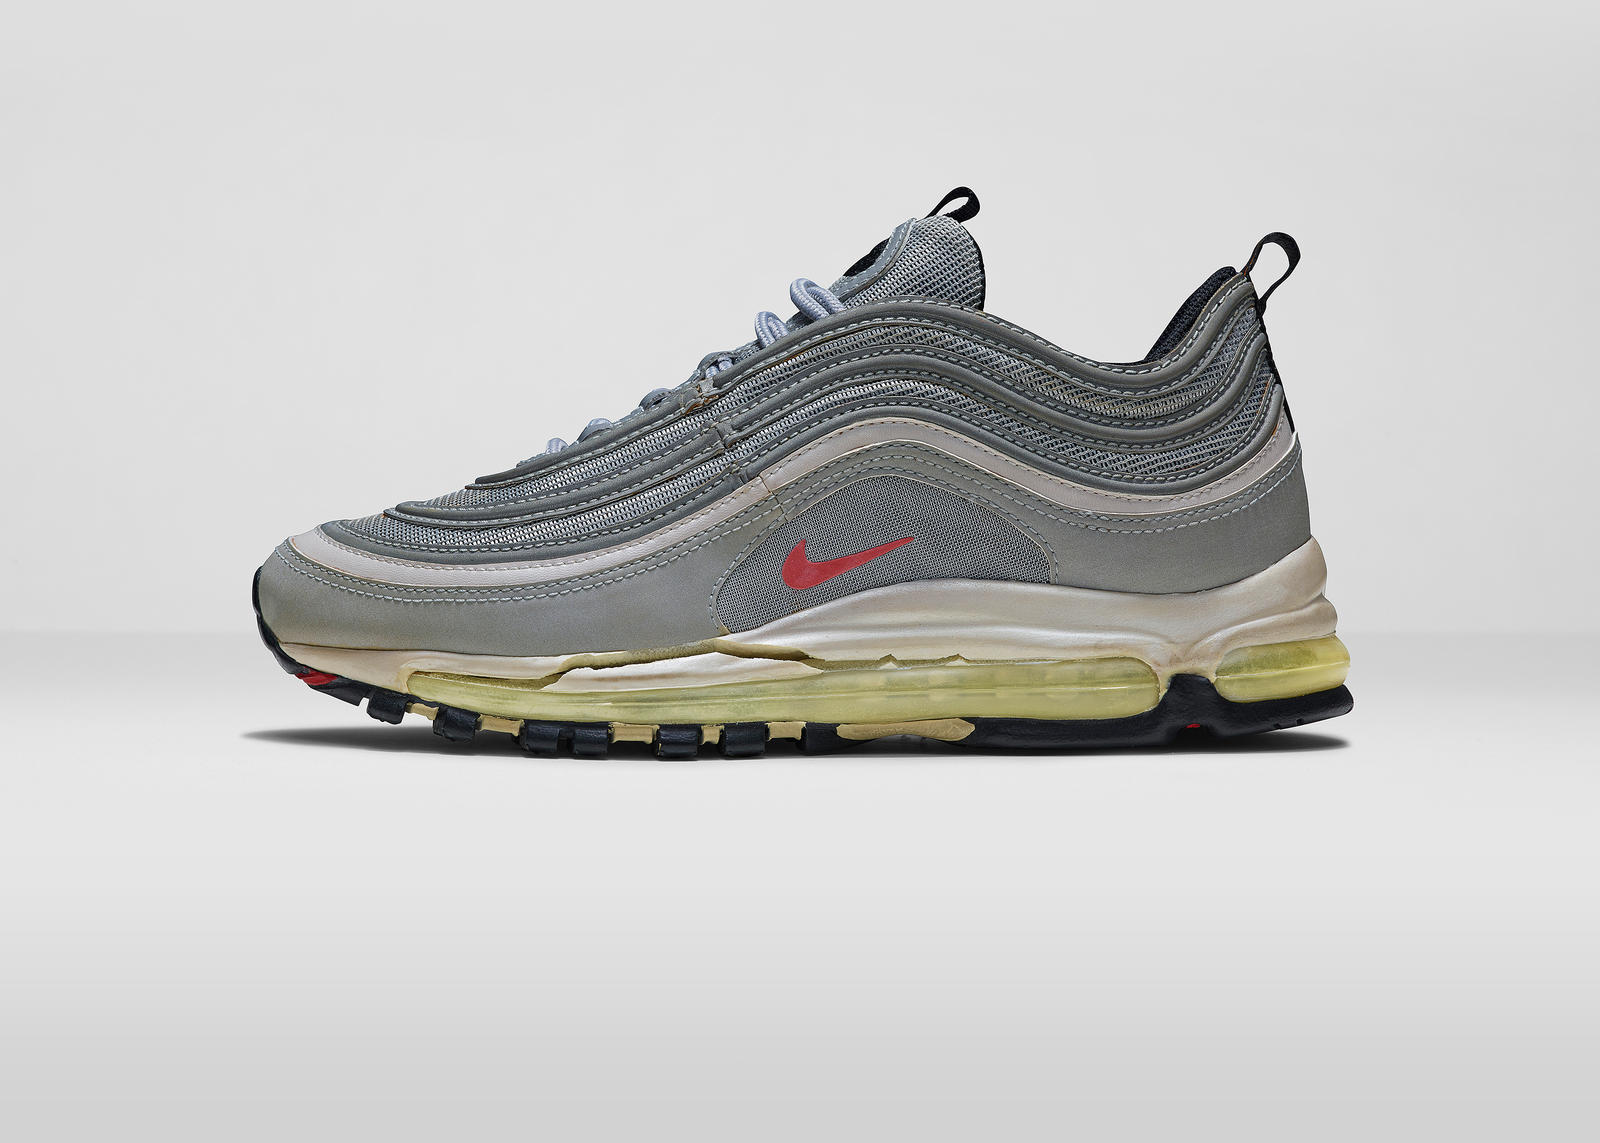 super popular 306eb a4dea Air Max 97. Nike AirMaxDay 2015 1997 LAT